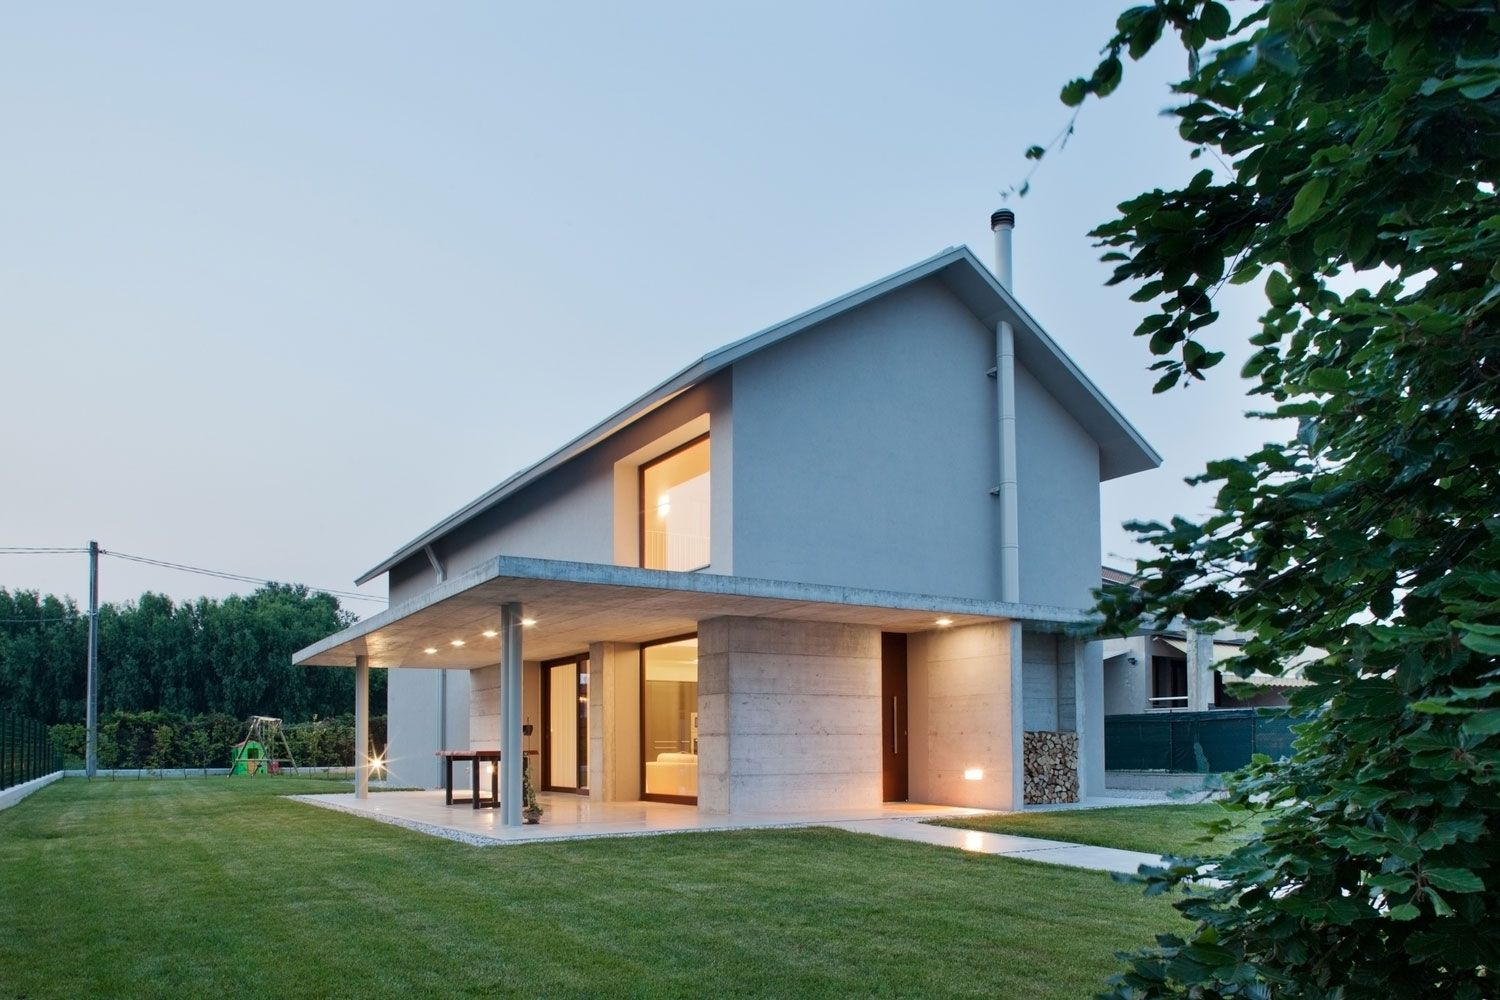 Detached home is a residential project completed by the architectural firm mide architects based in